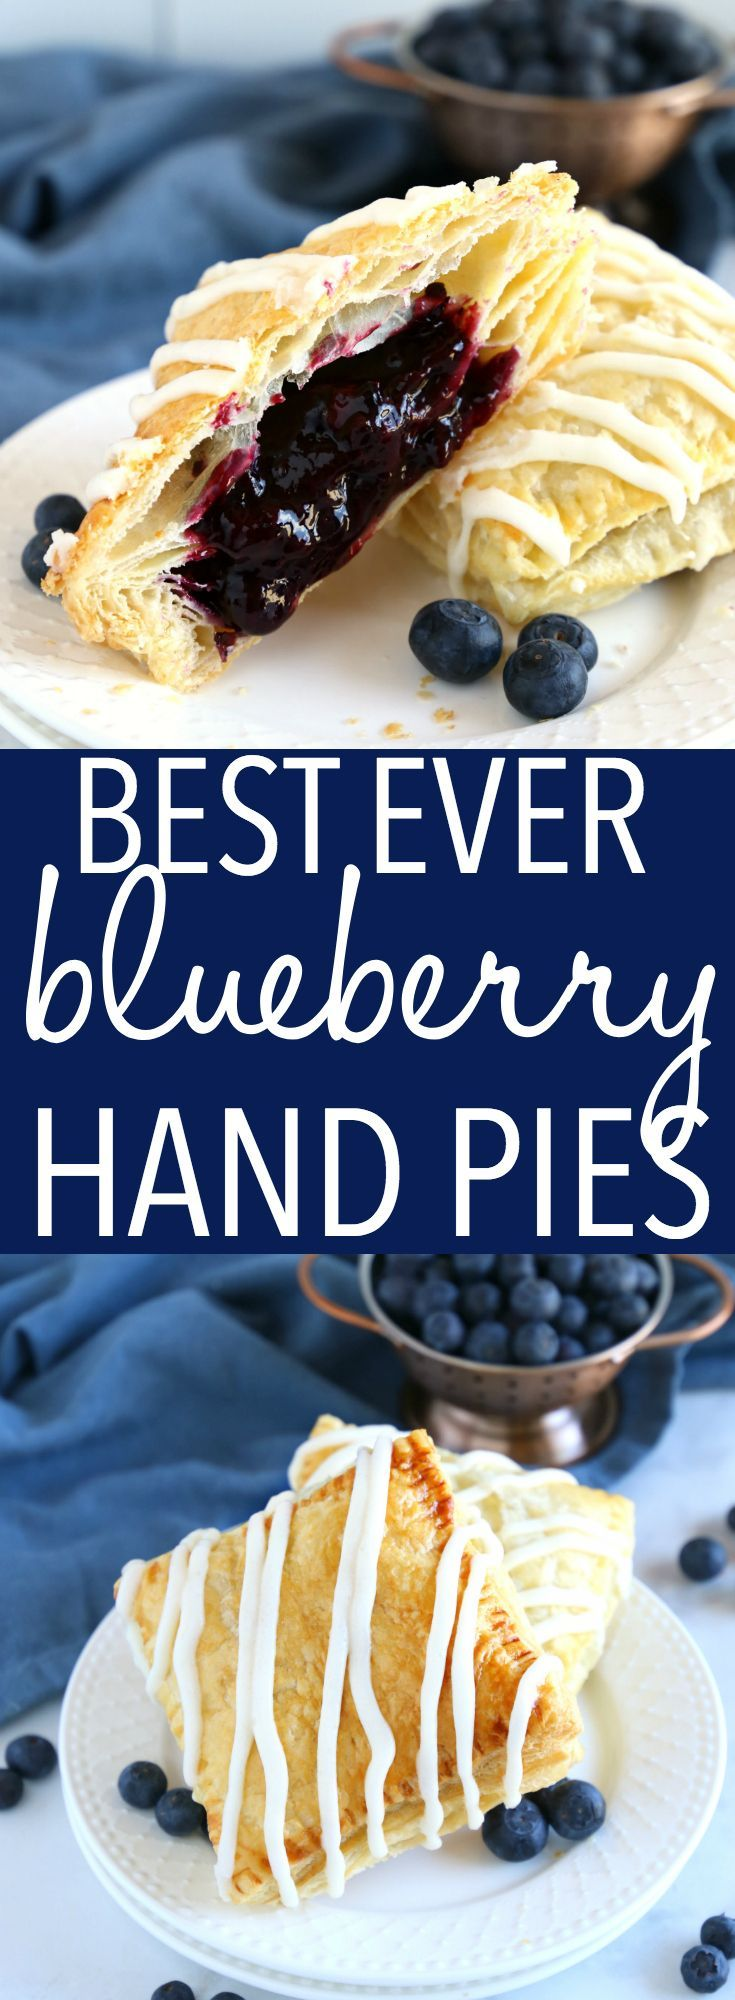 Best Ever Blueberry Hand Pies {Easy Dessert or Brunch Recipe!} - The Busy Baker